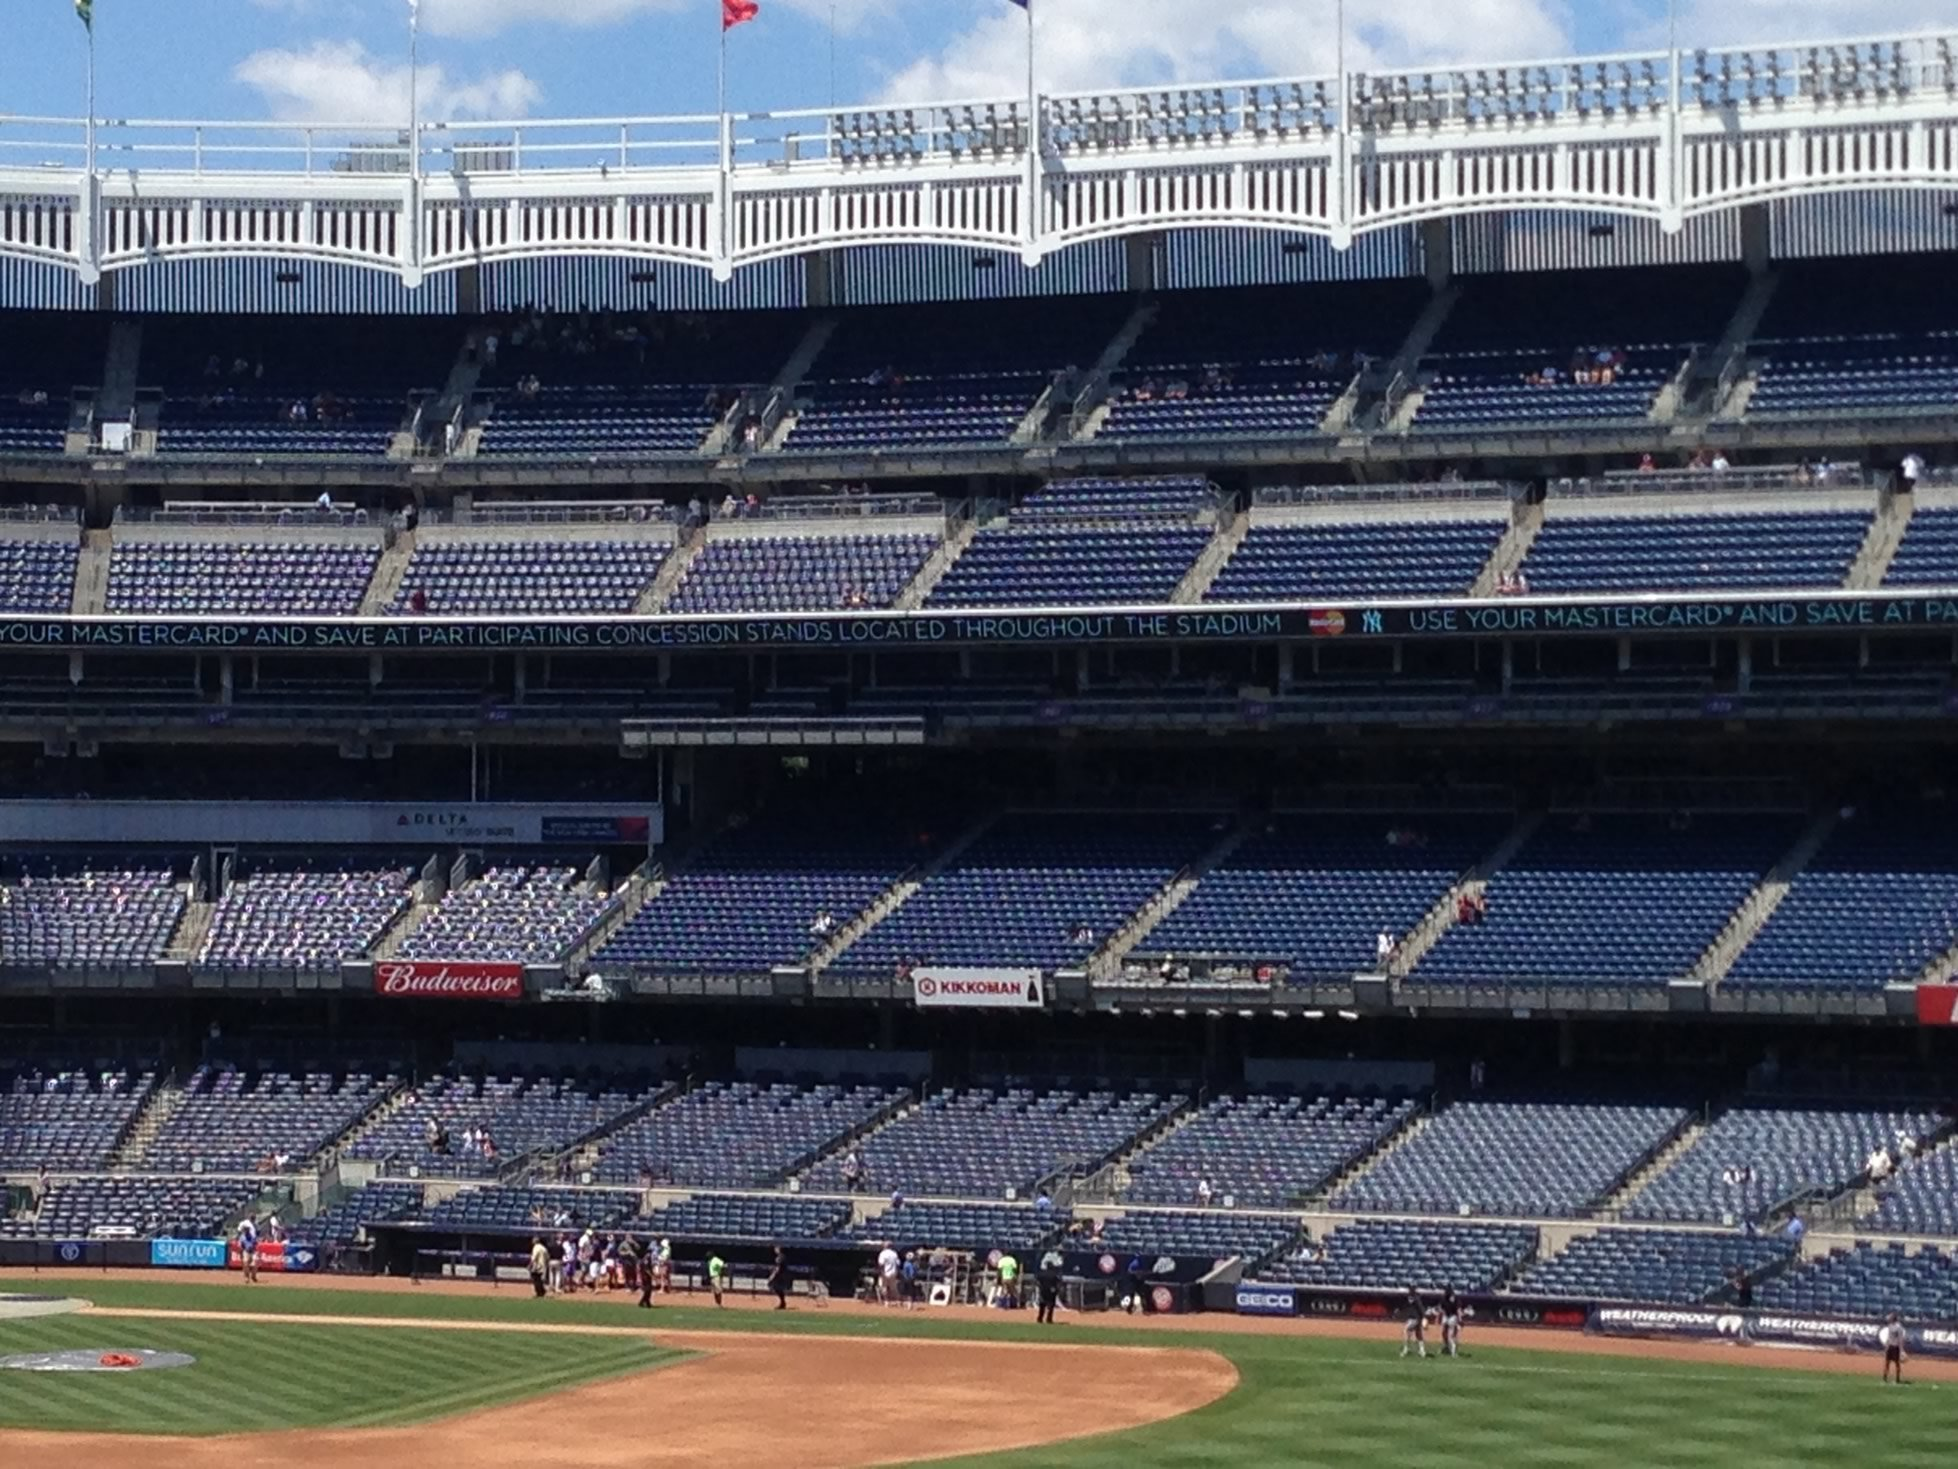 yankee stadium photo showing shaded seats